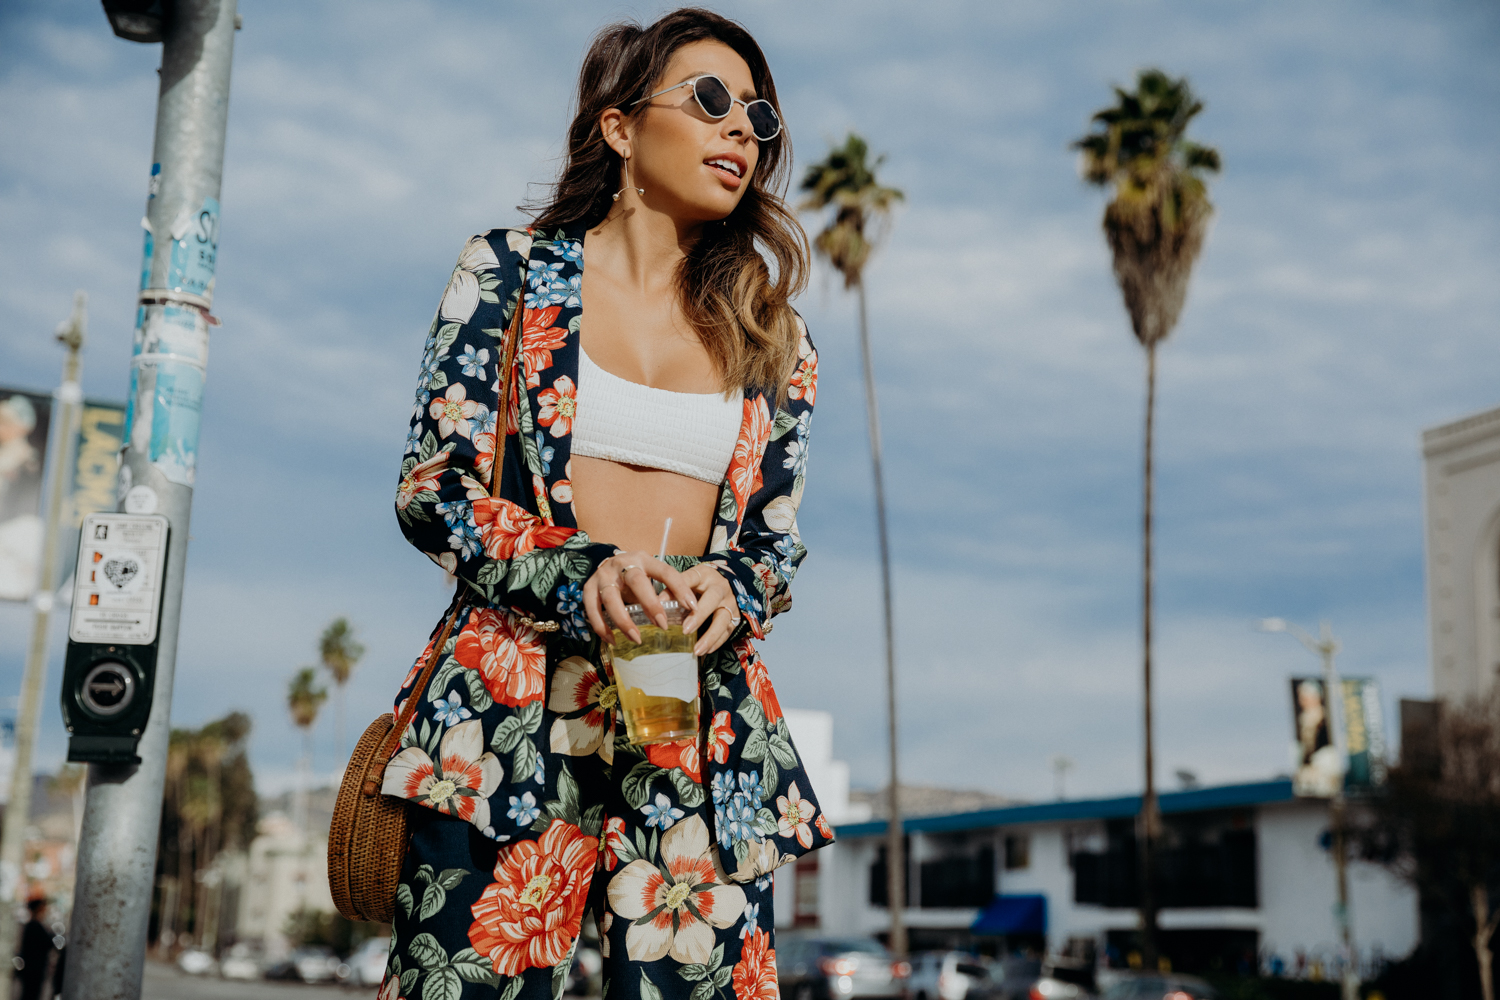 Floral Two Piece Look - Everyday Pursuits Palm Springs